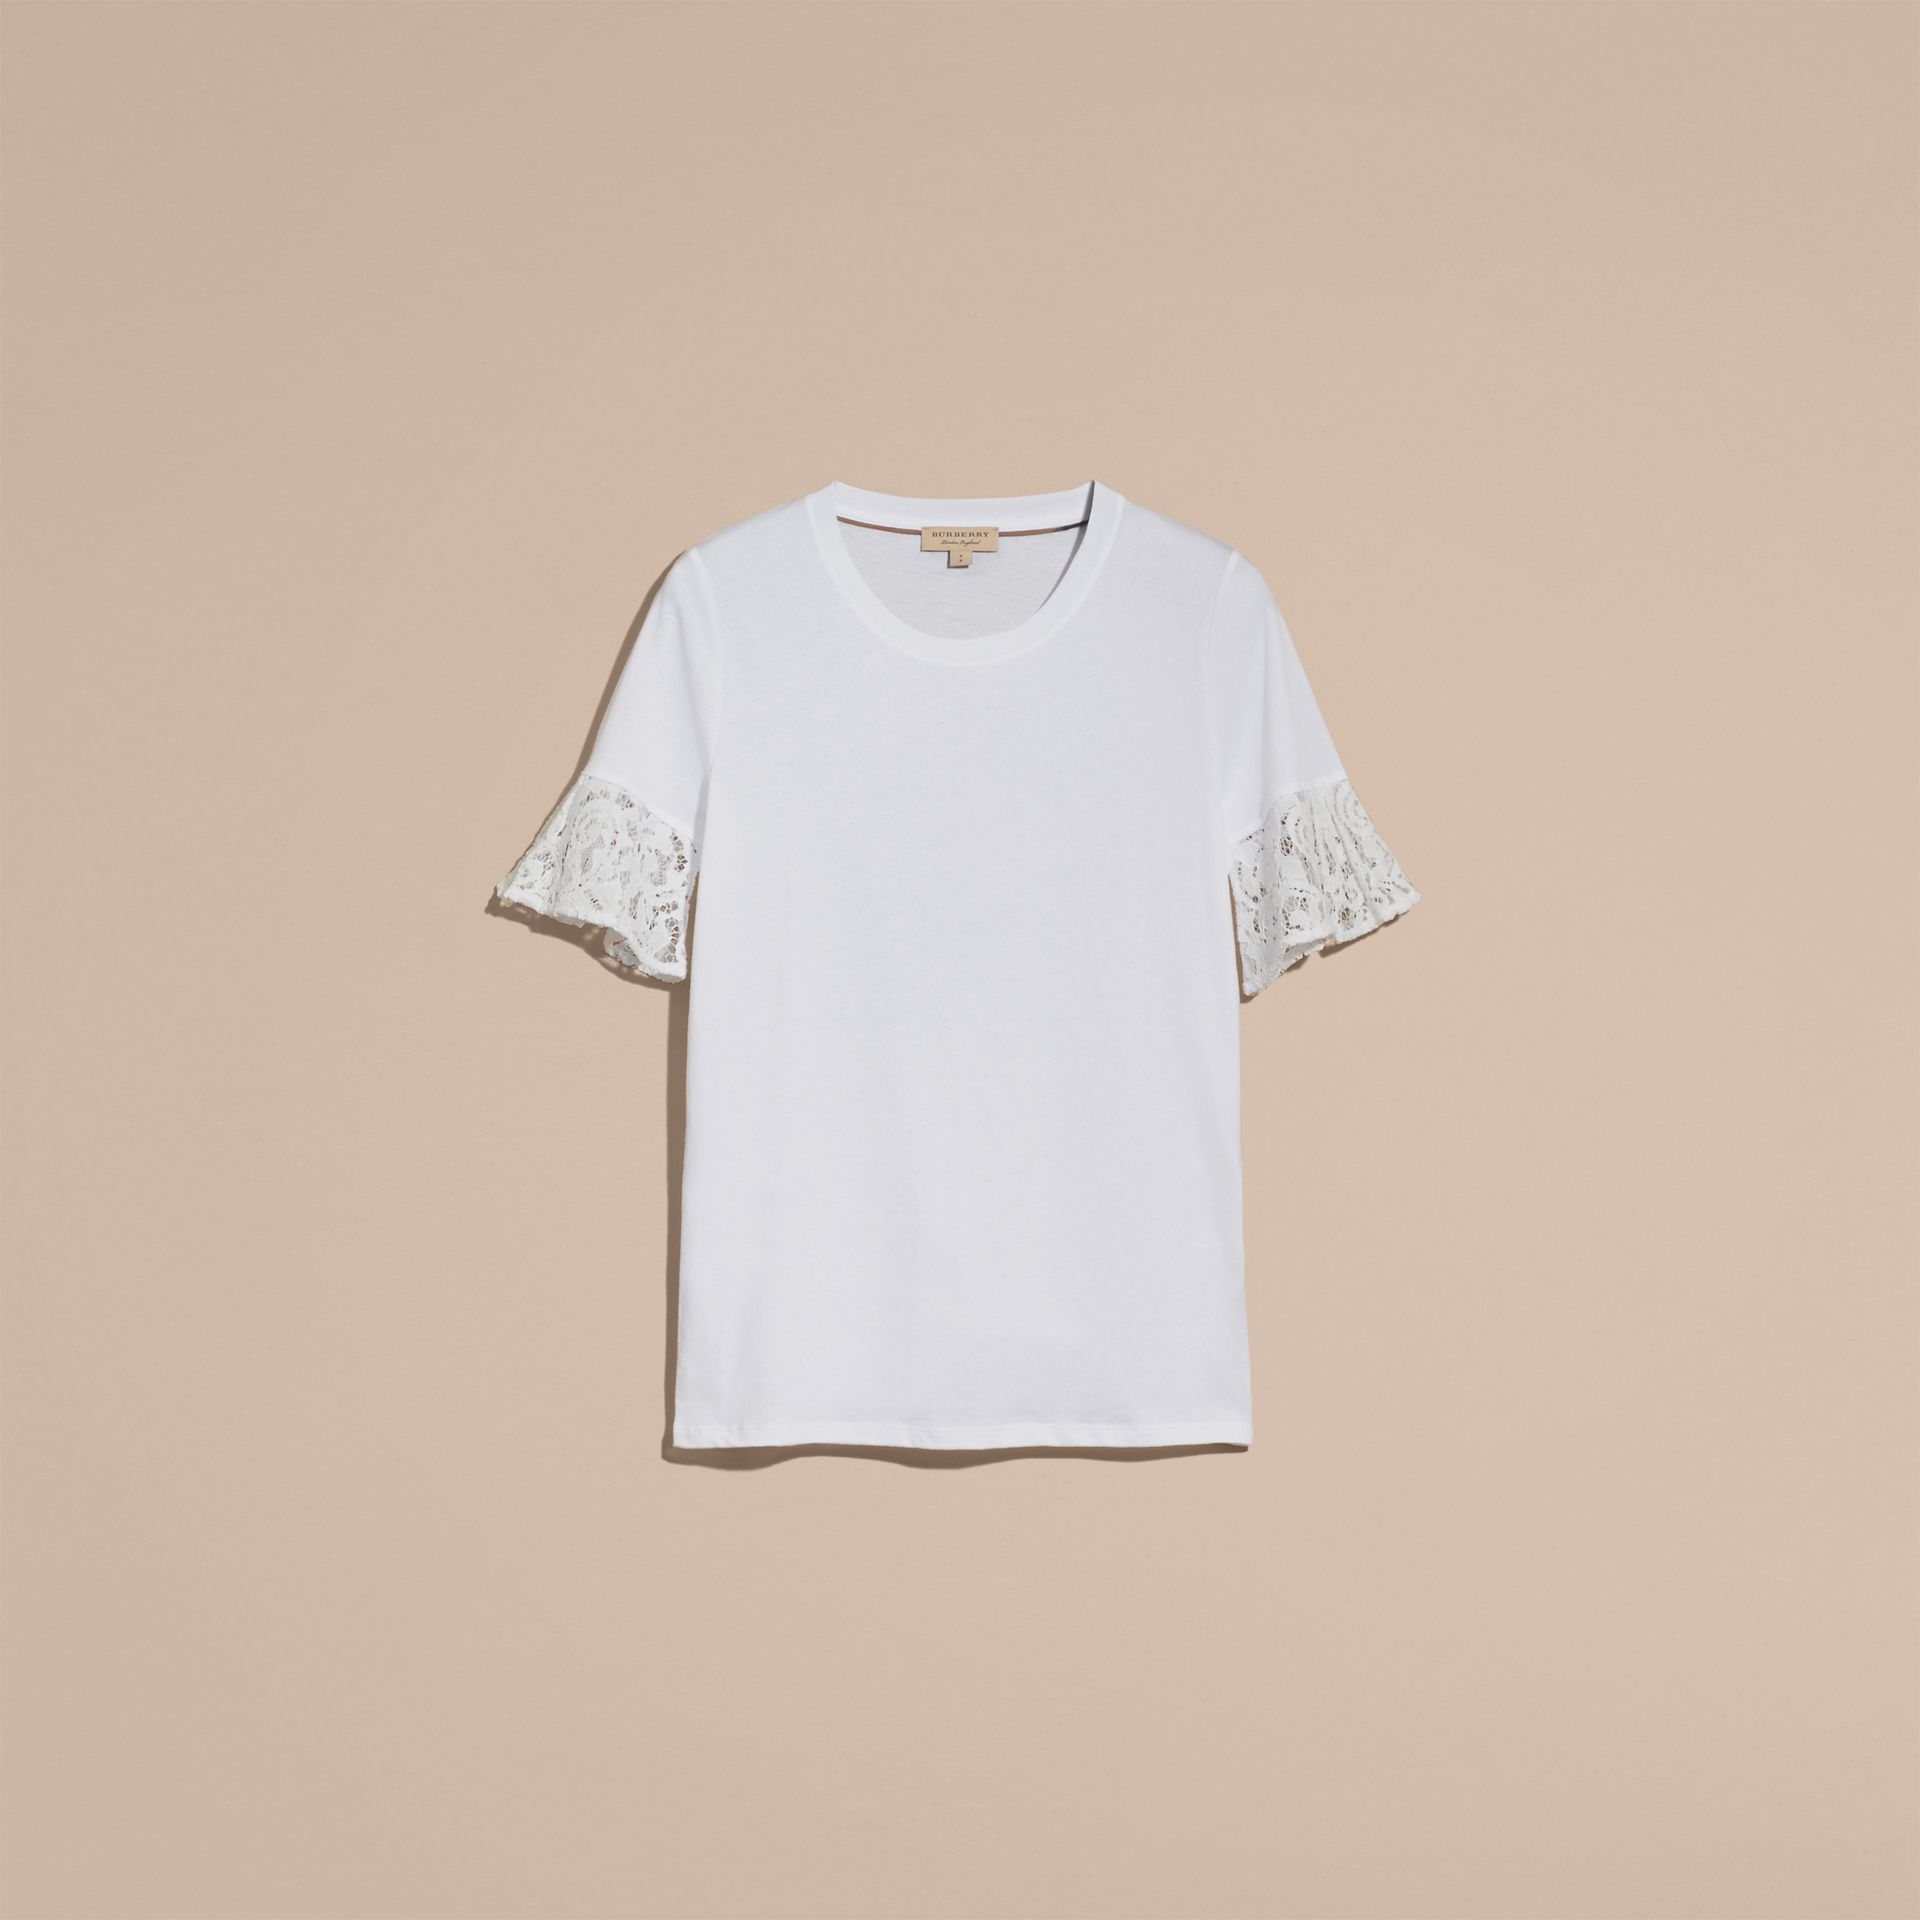 White Lace Trim Cotton T-shirt White - gallery image 4